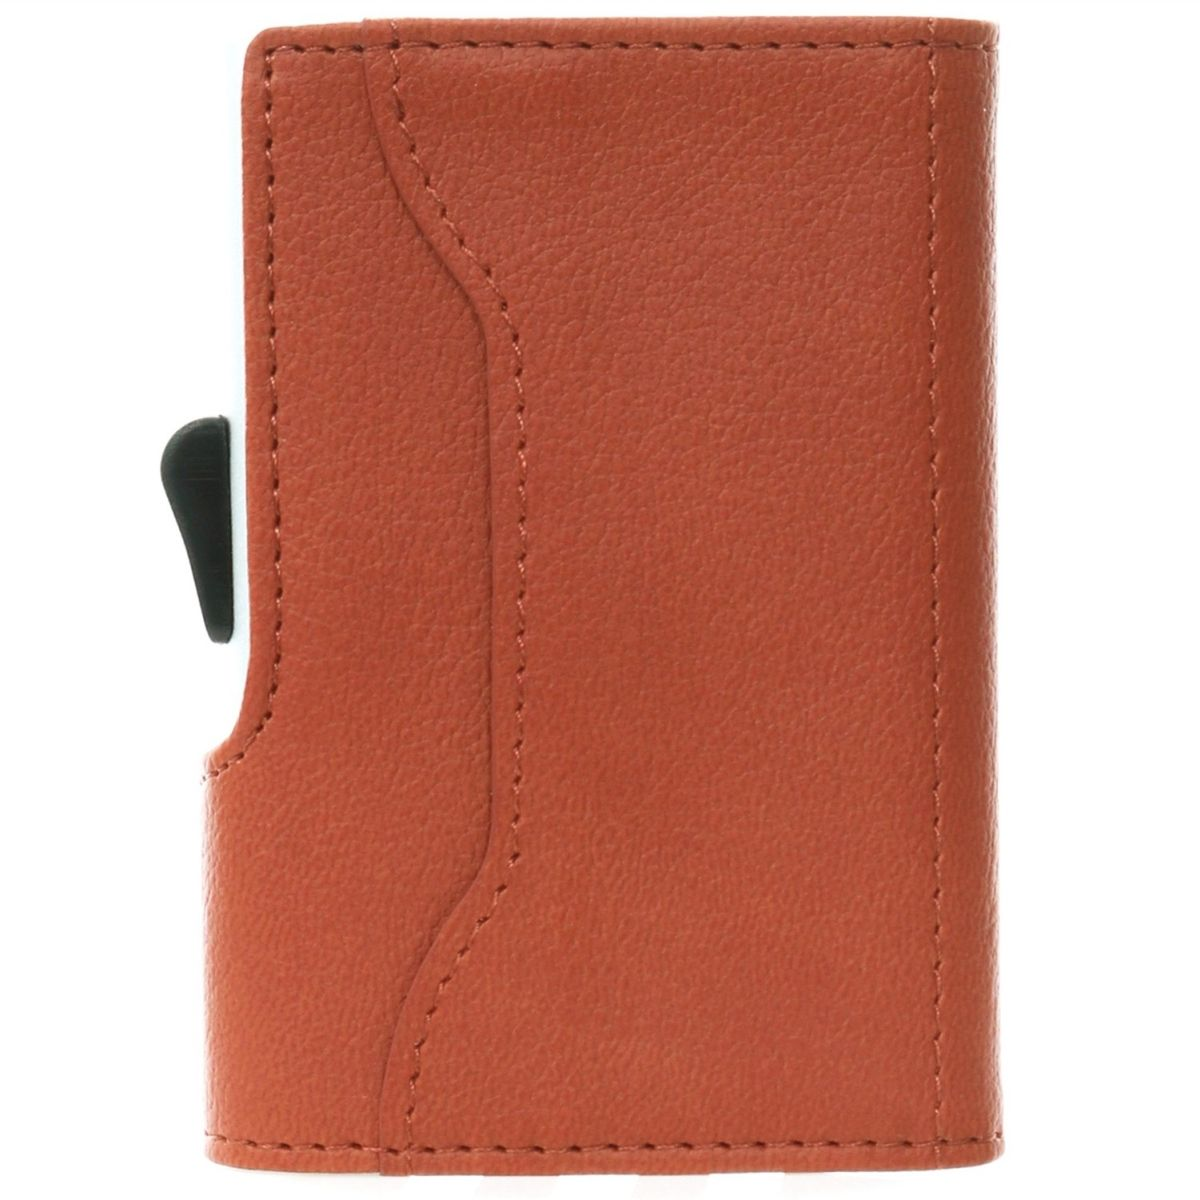 C-Secure Aluminum Card Holder with PU Leather - Light Brown